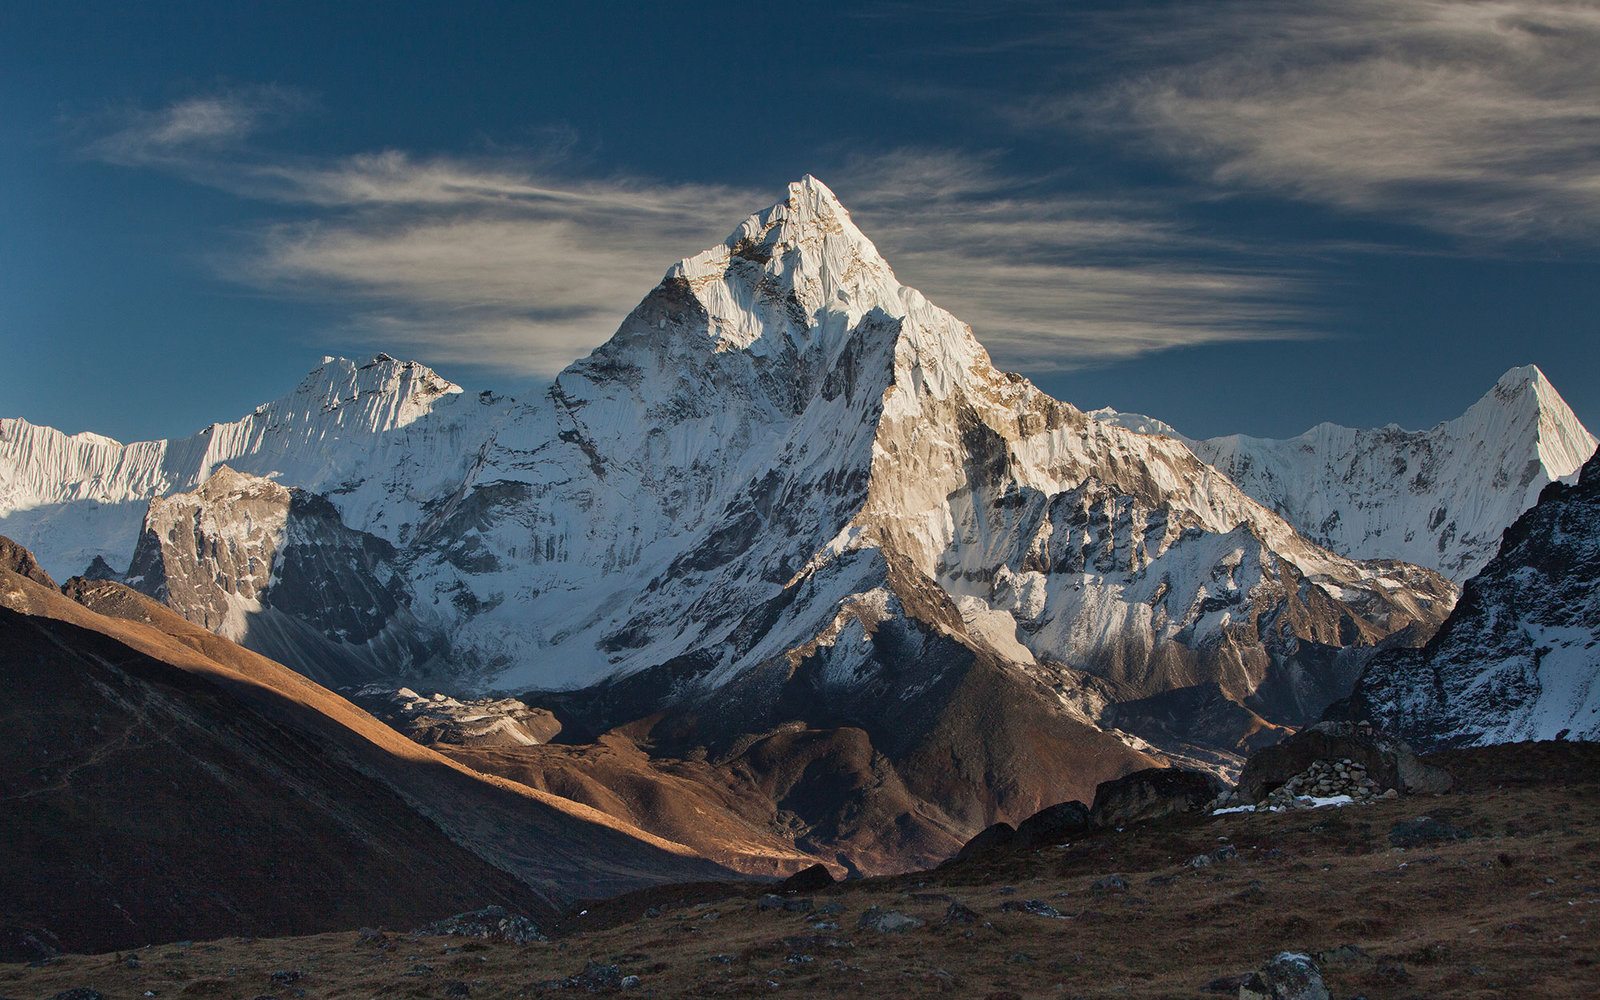 Summiting Everest Will Become A Simple Excursion